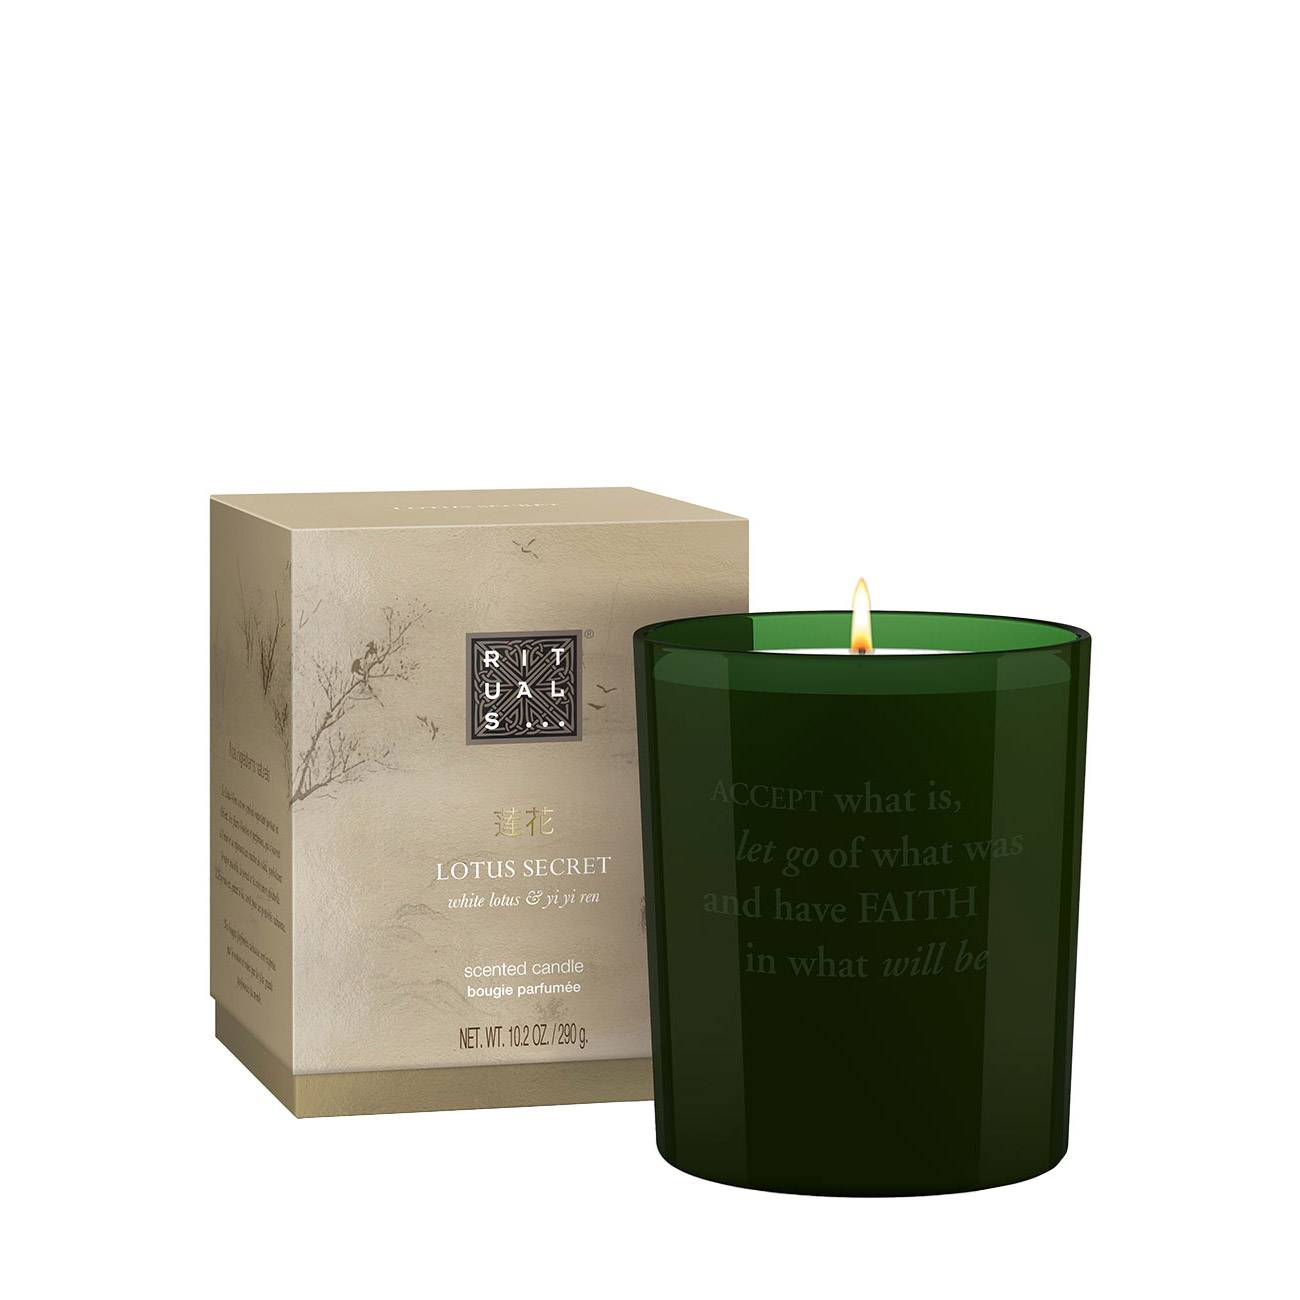 LOTUS SECRET CANDLE 250 Grame imagine produs